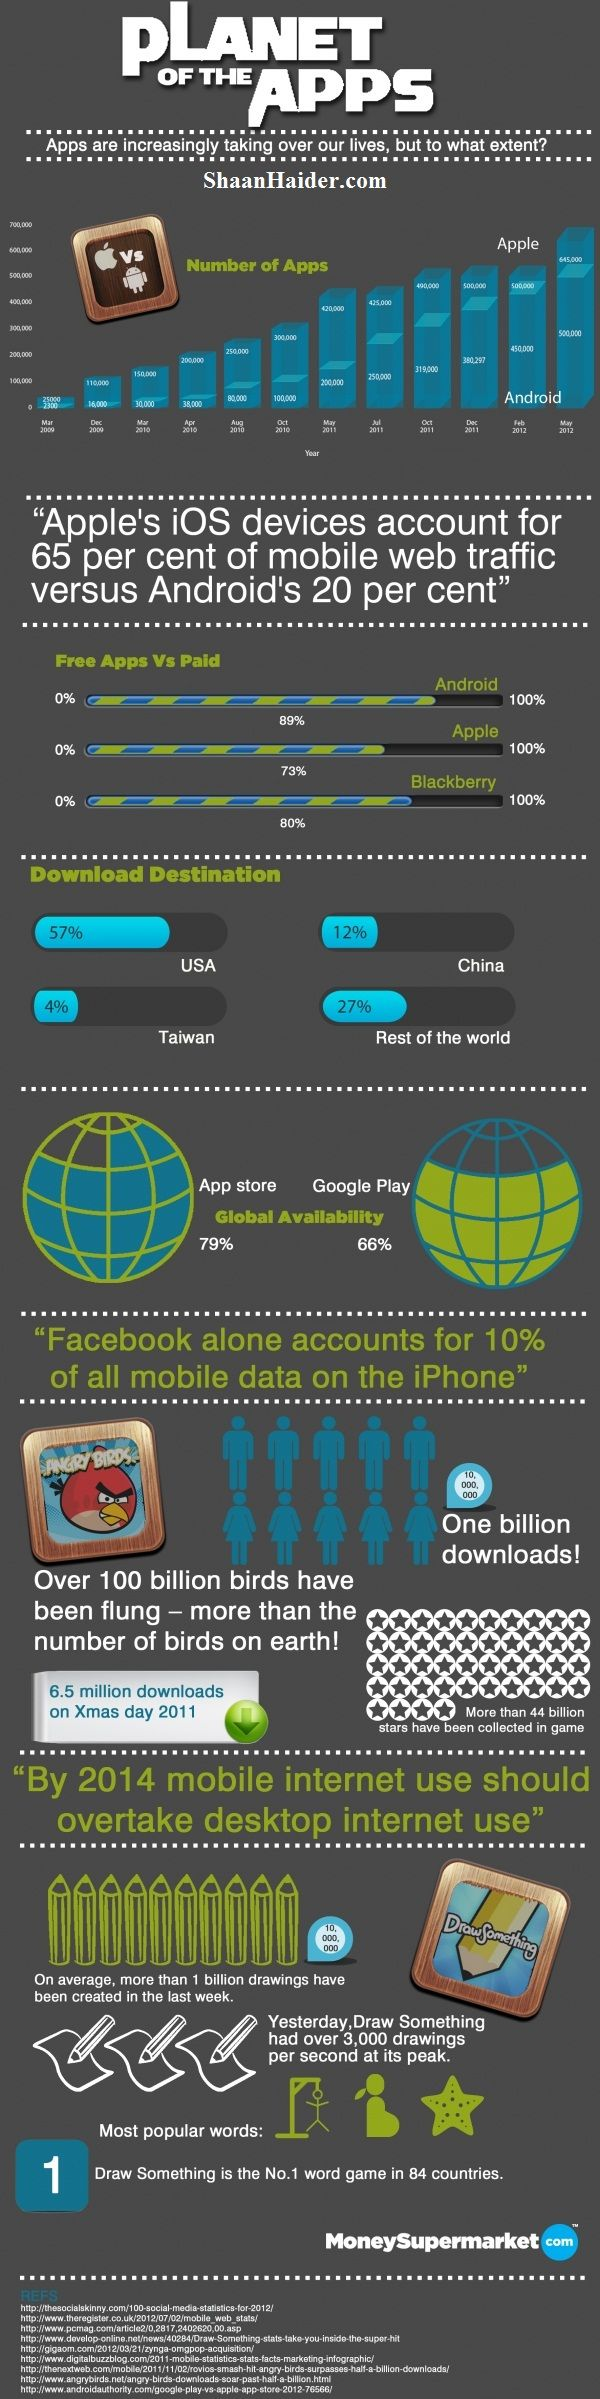 The Smartphone Apps Infographic